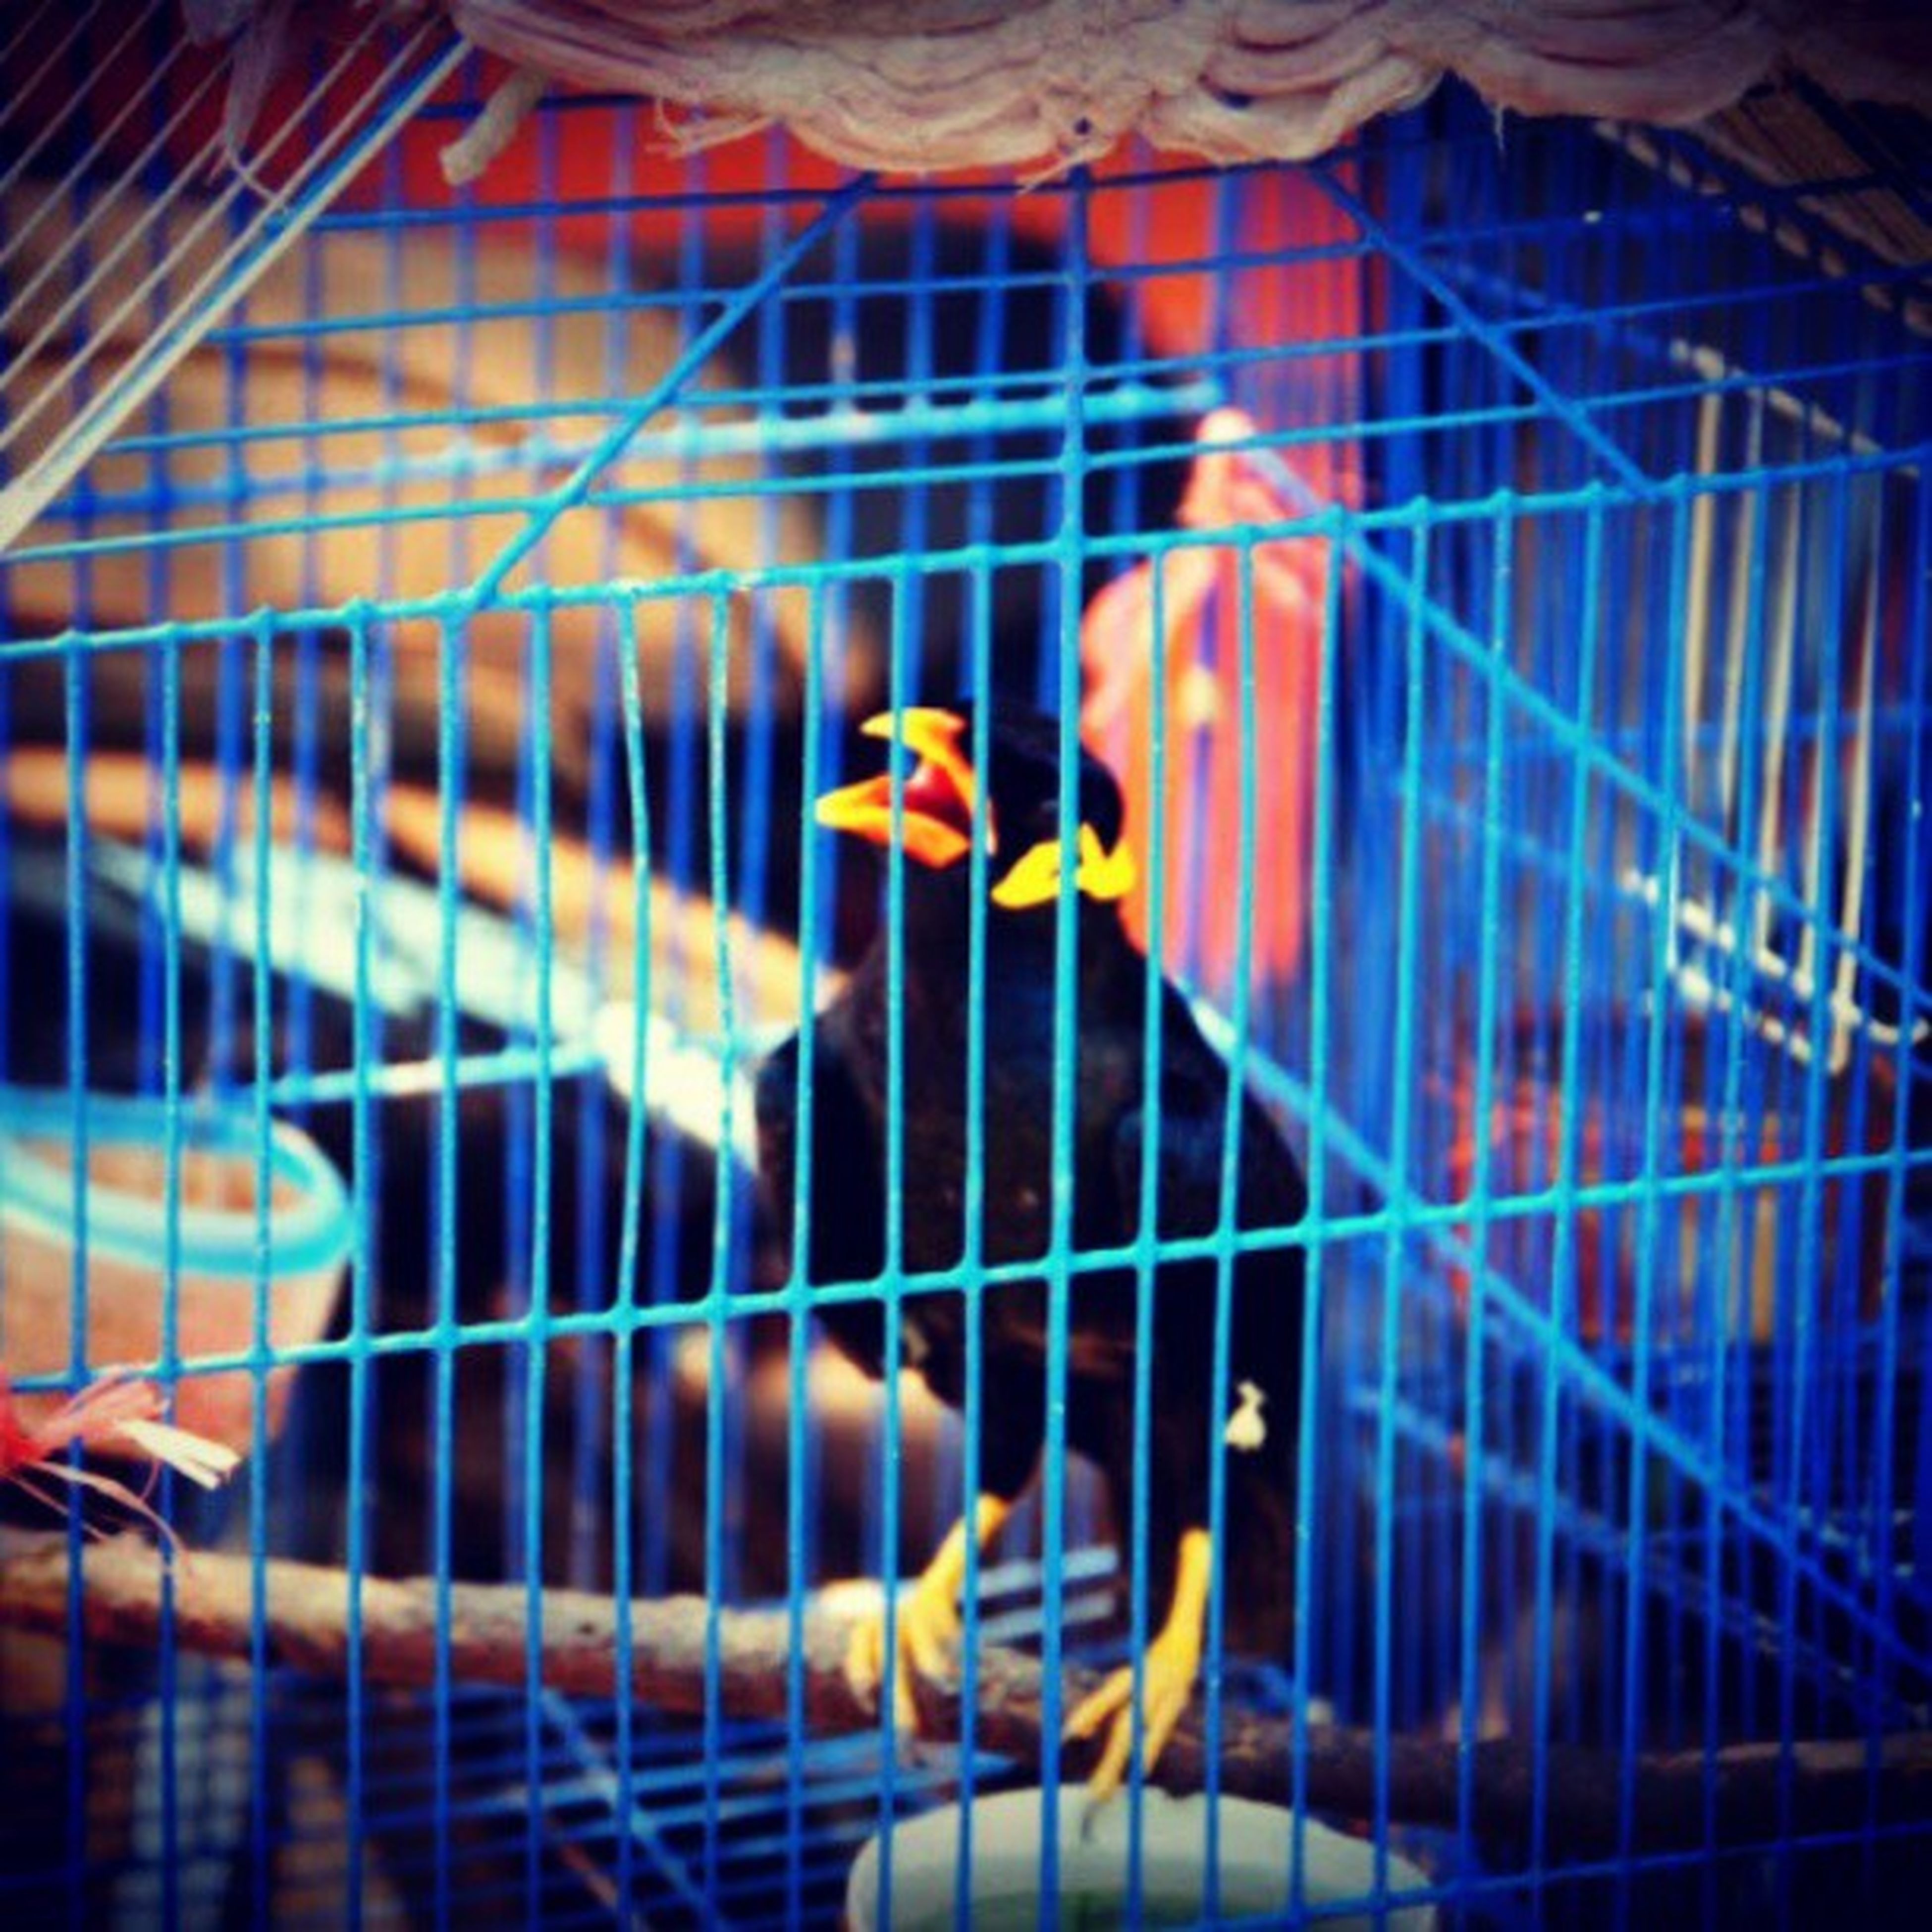 animal themes, bird, cage, animals in the wild, animals in captivity, wildlife, one animal, indoors, built structure, birdcage, perching, parrot, architecture, men, building exterior, focus on foreground, fence, pets